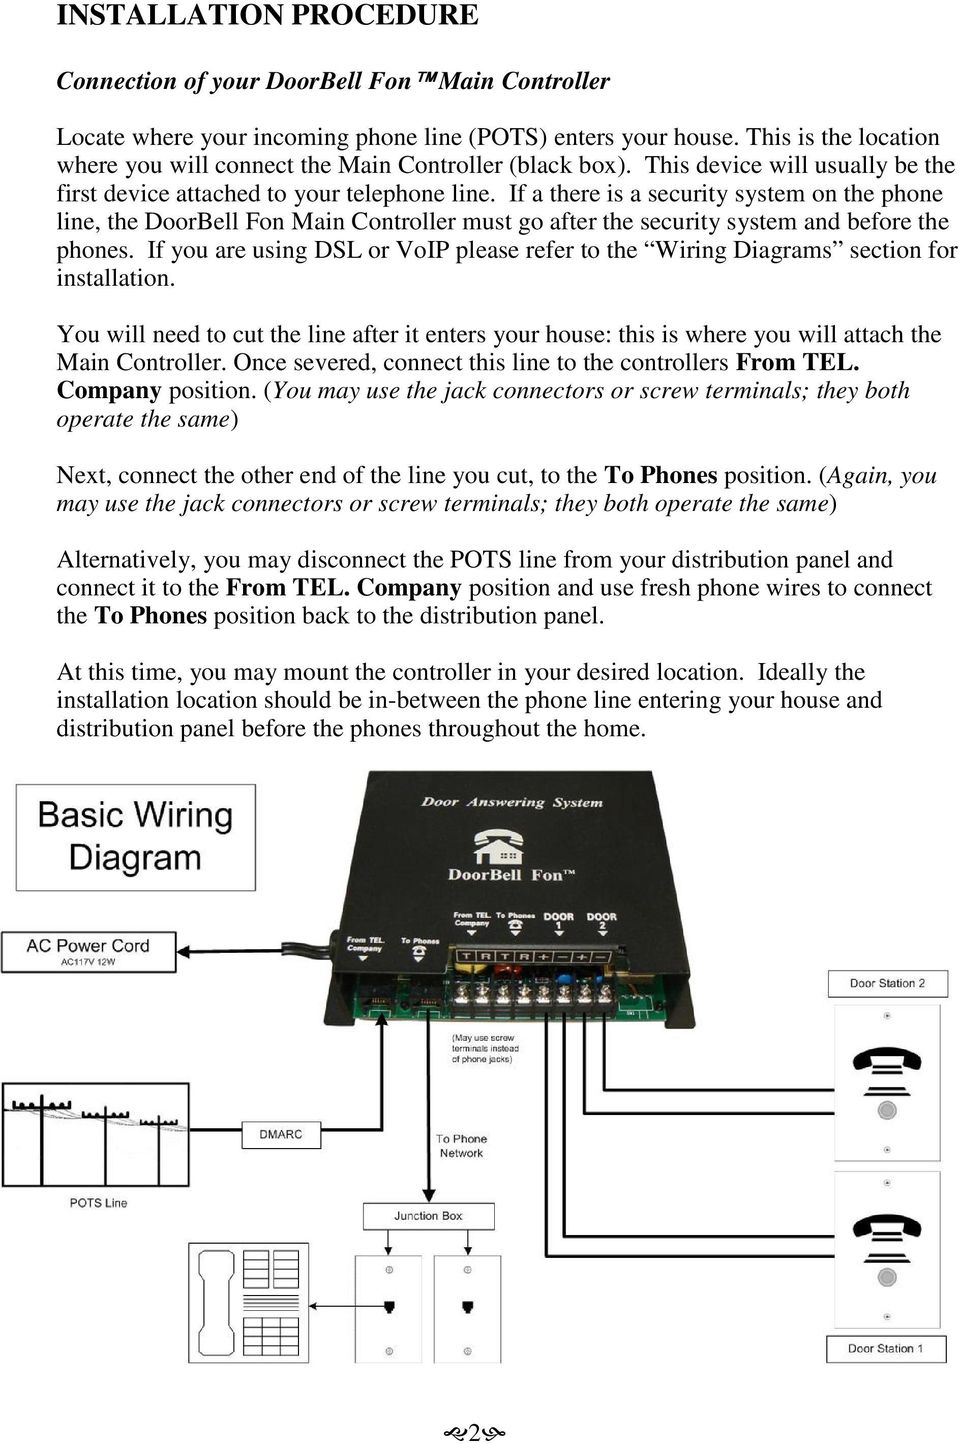 Doorbell fon user and installation manual pdf if a there is a security system on the phone line the doorbell fon main cheapraybanclubmaster Choice Image